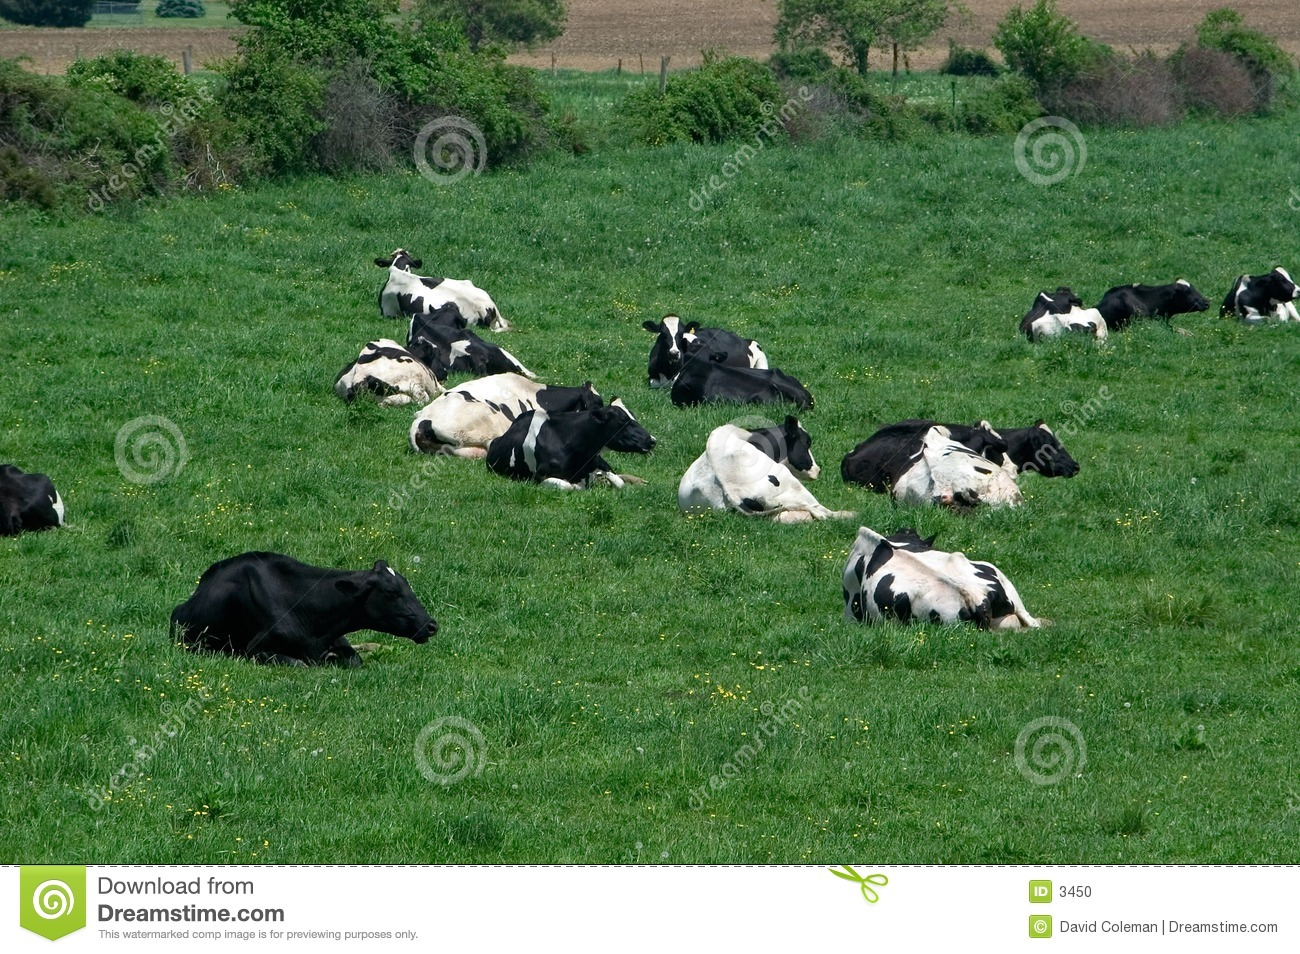 Cows in field at rest